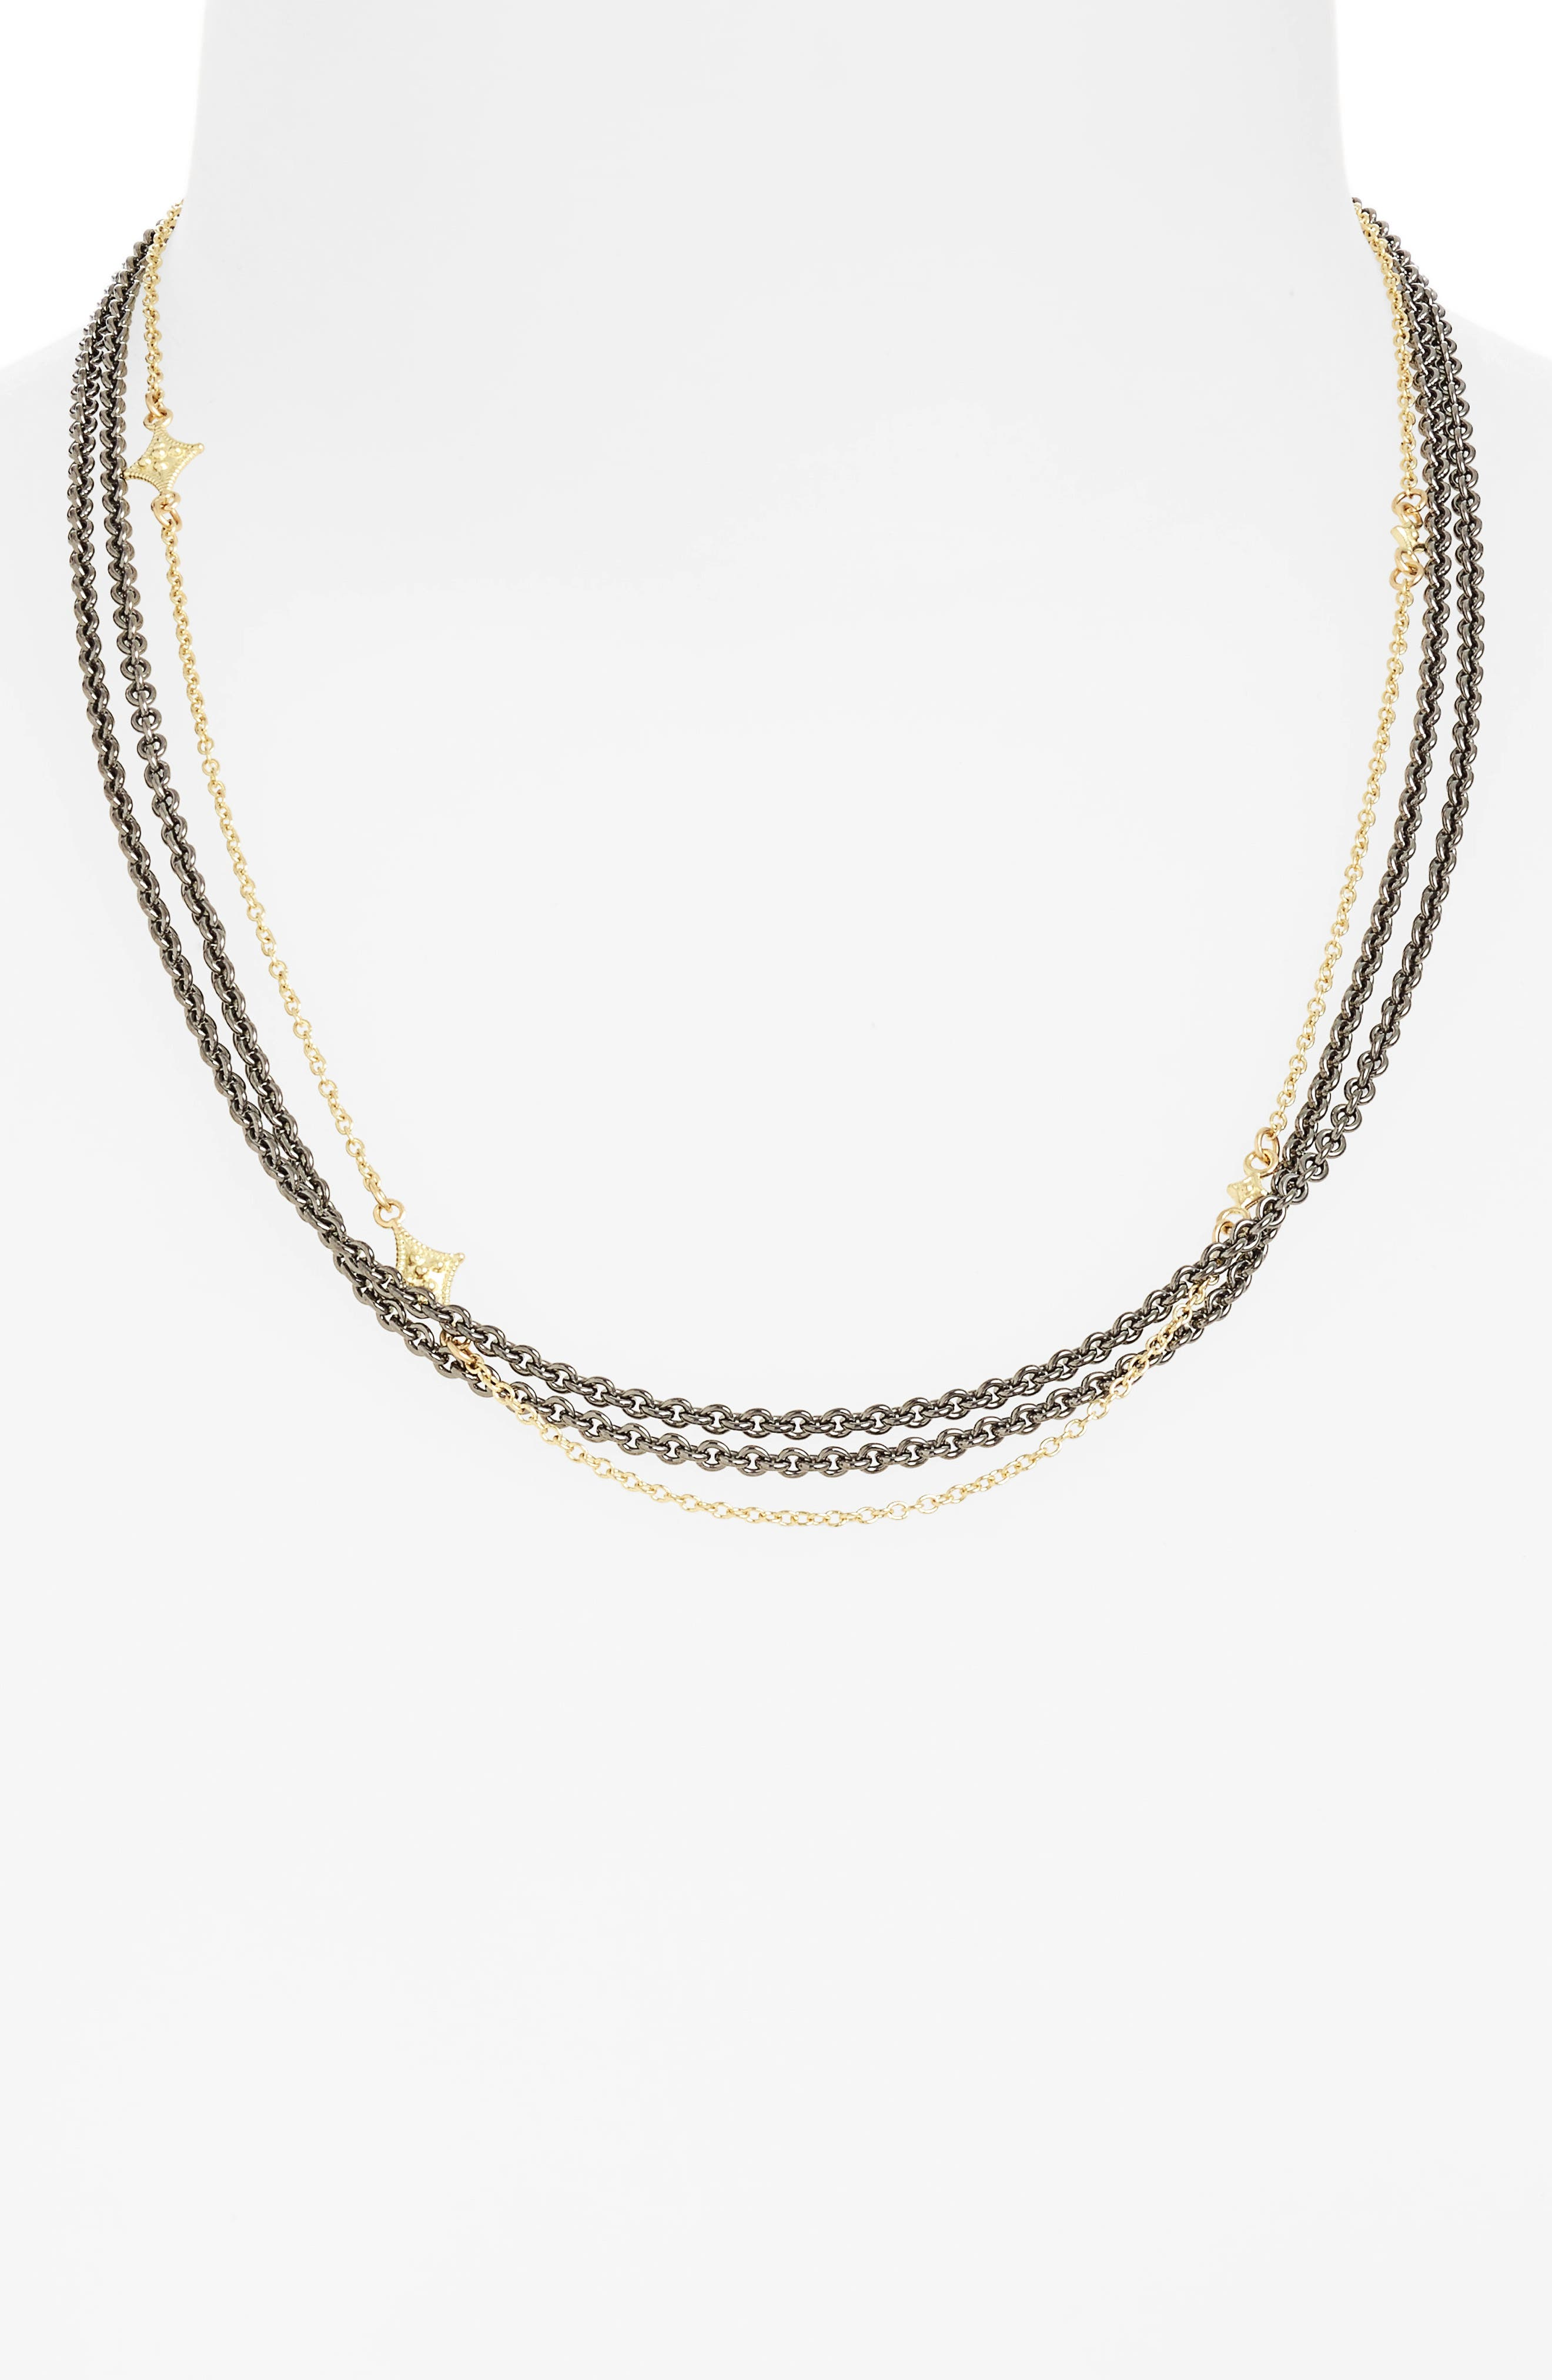 Old World Crivelli Collar Necklace,                         Main,                         color, Gold